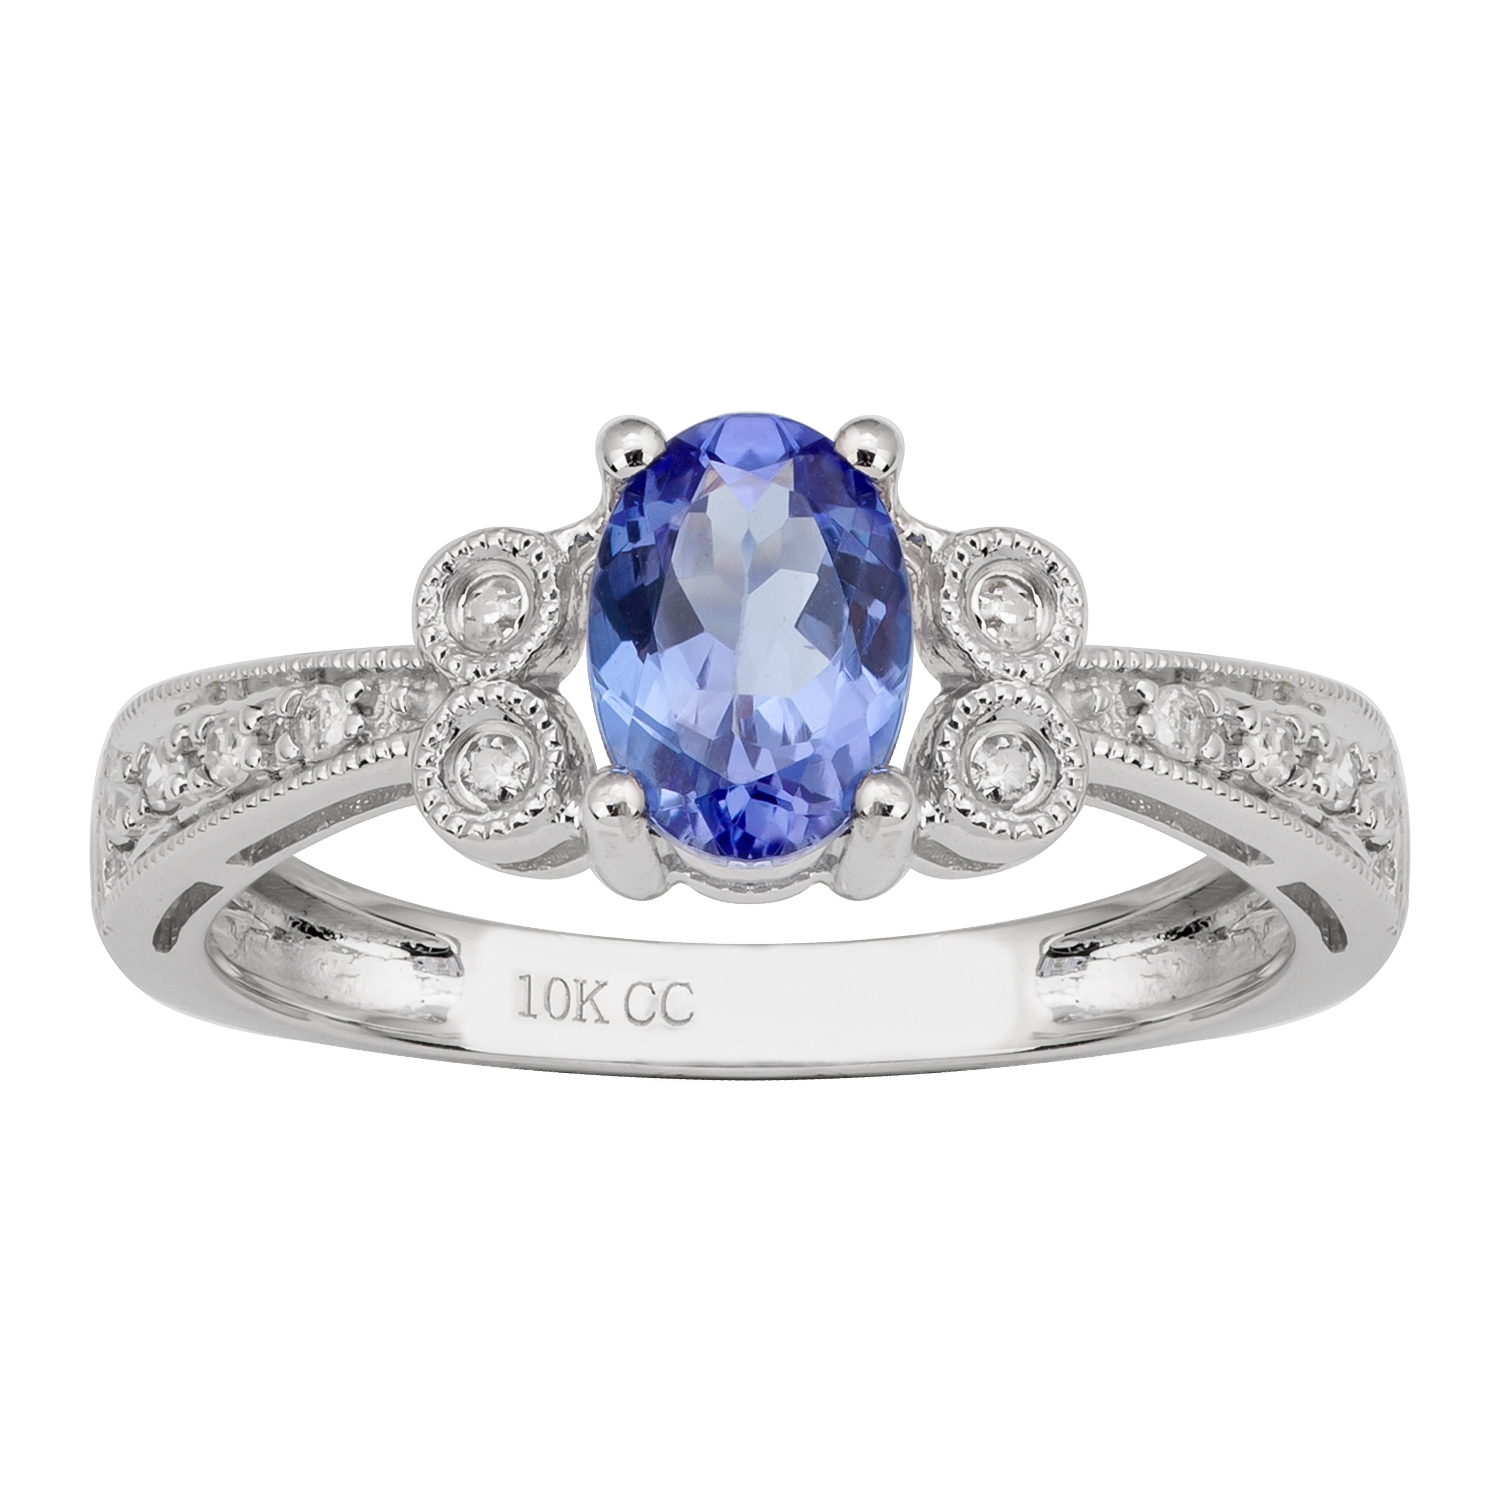 10k White Gold Vintage Style Oval Tanzanite And Diamond Ring Throughout Current Diamond Accent Vintage Style Anniversary Bands In White Gold (View 13 of 25)